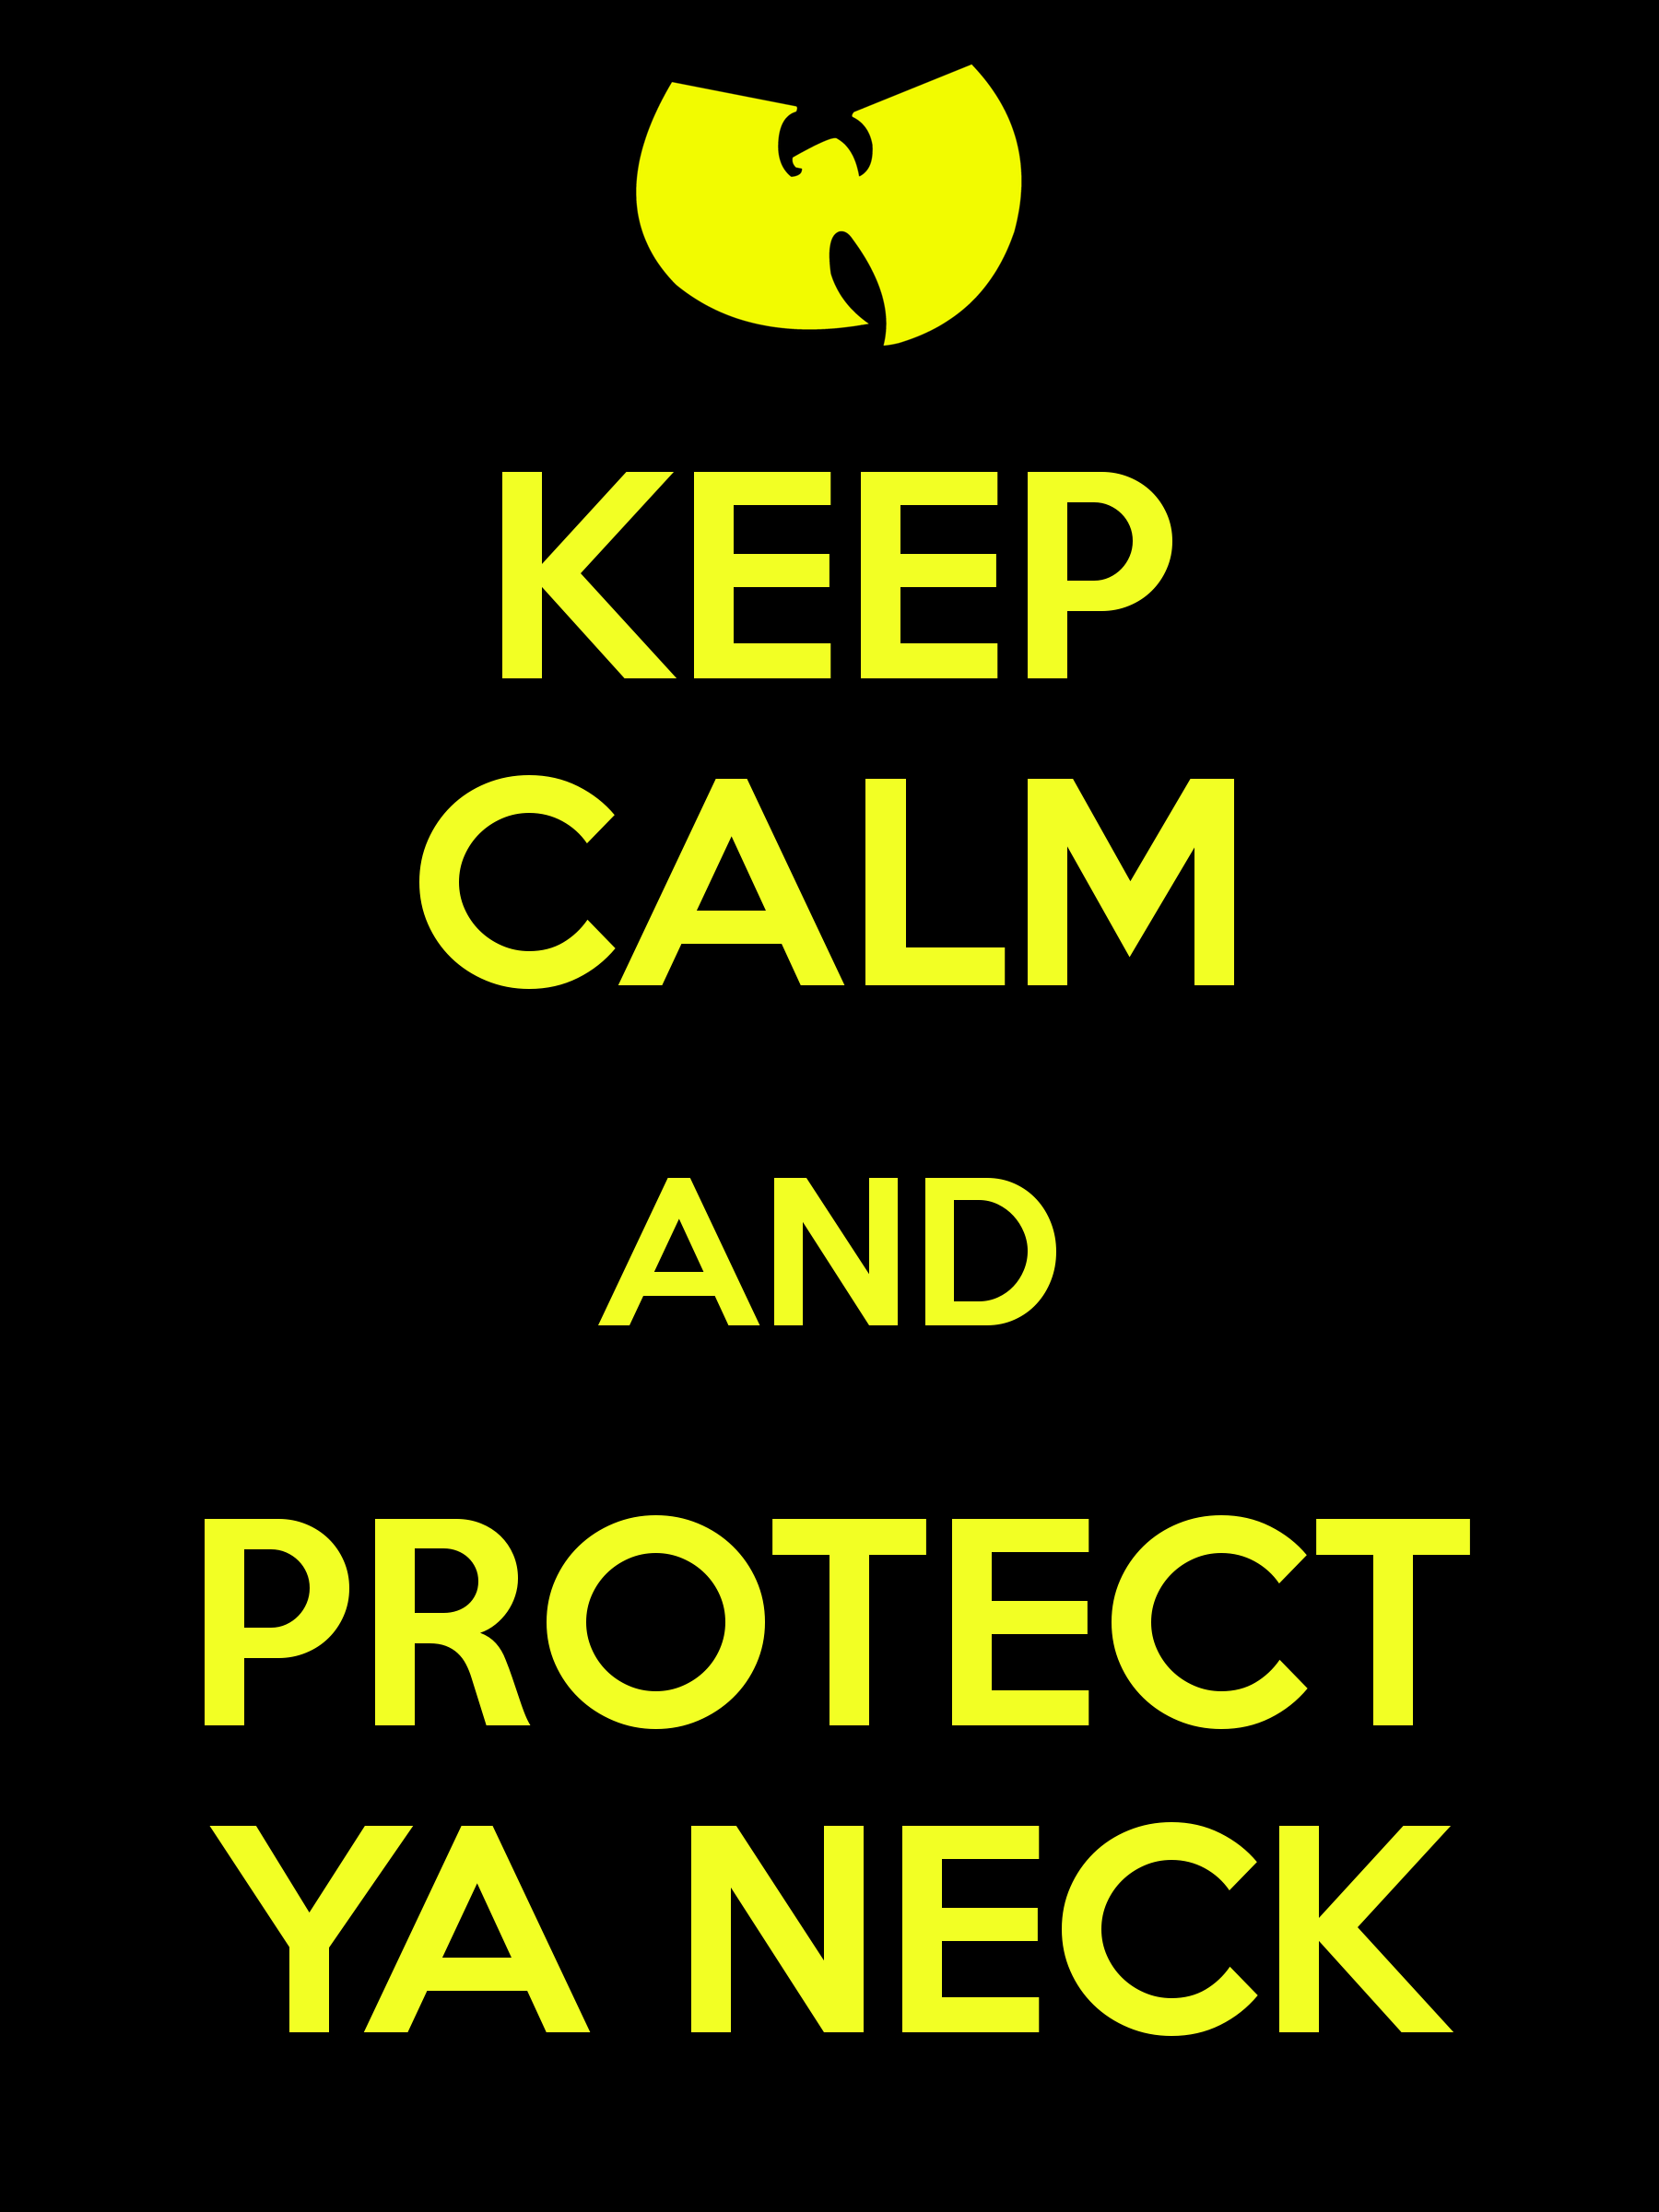 keep-calm-and-protect-ya-neck-11